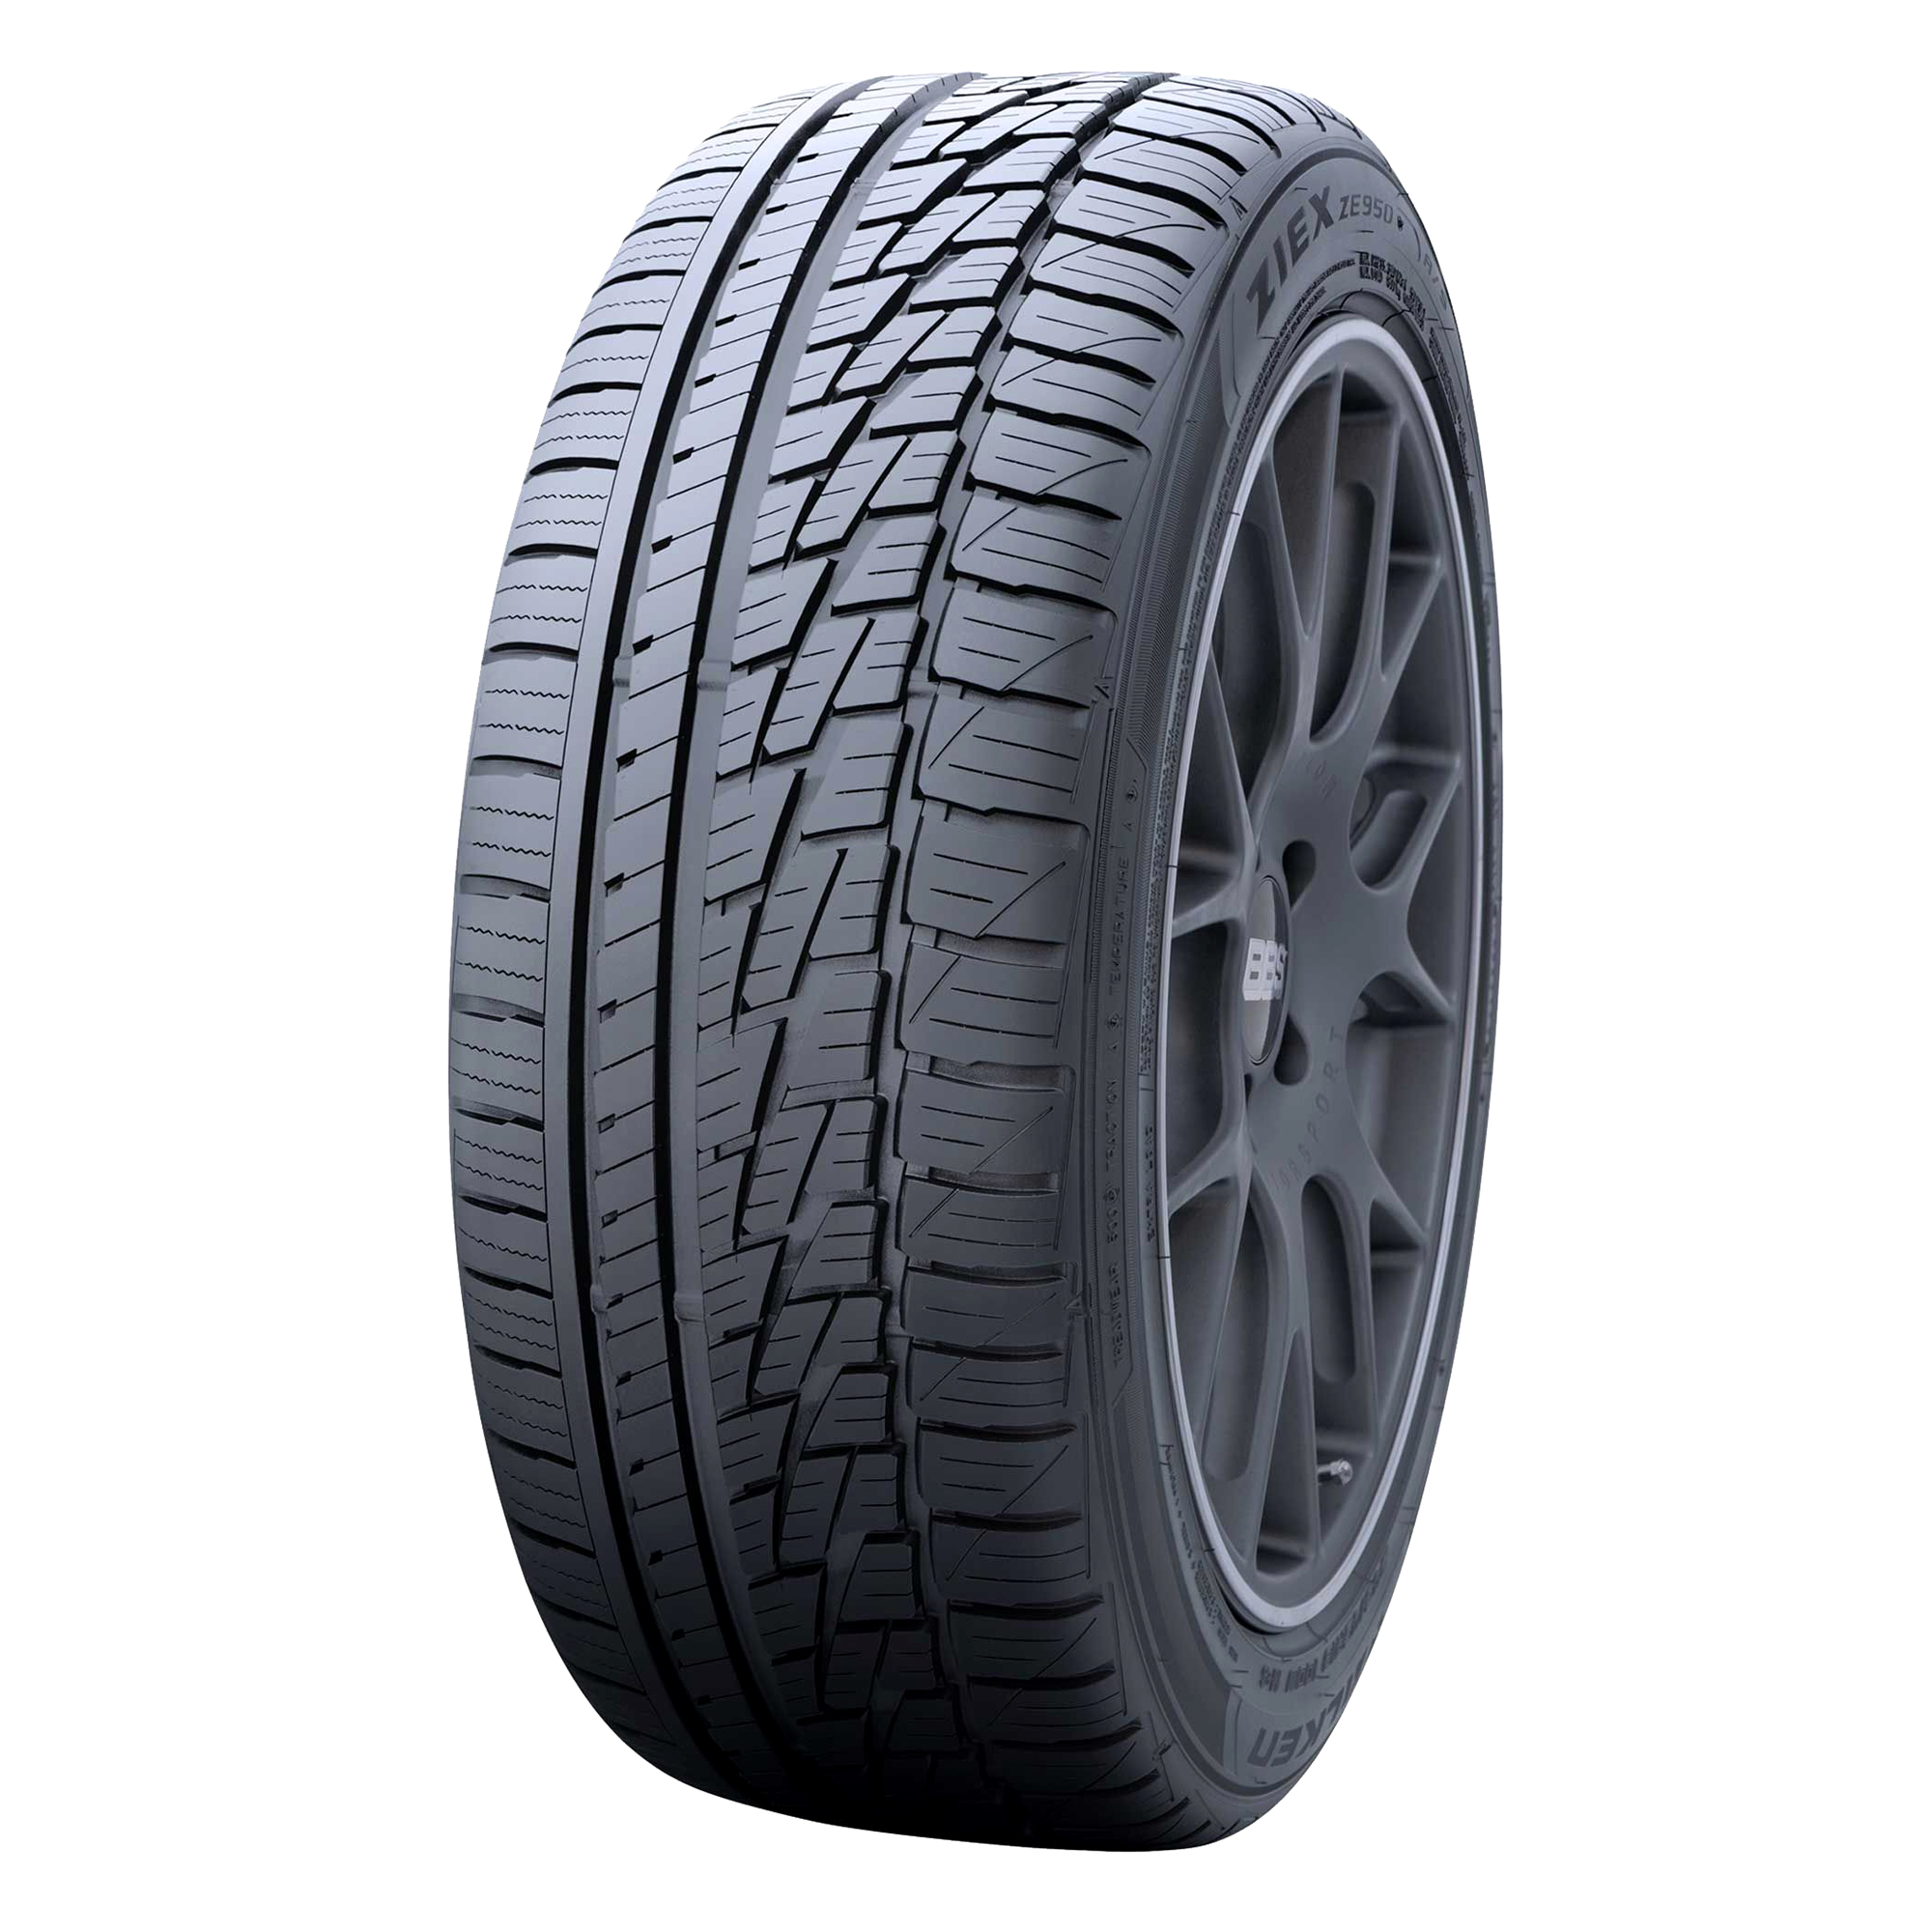 BFGoodrich Traction T/A Tire P215/60R16 94T